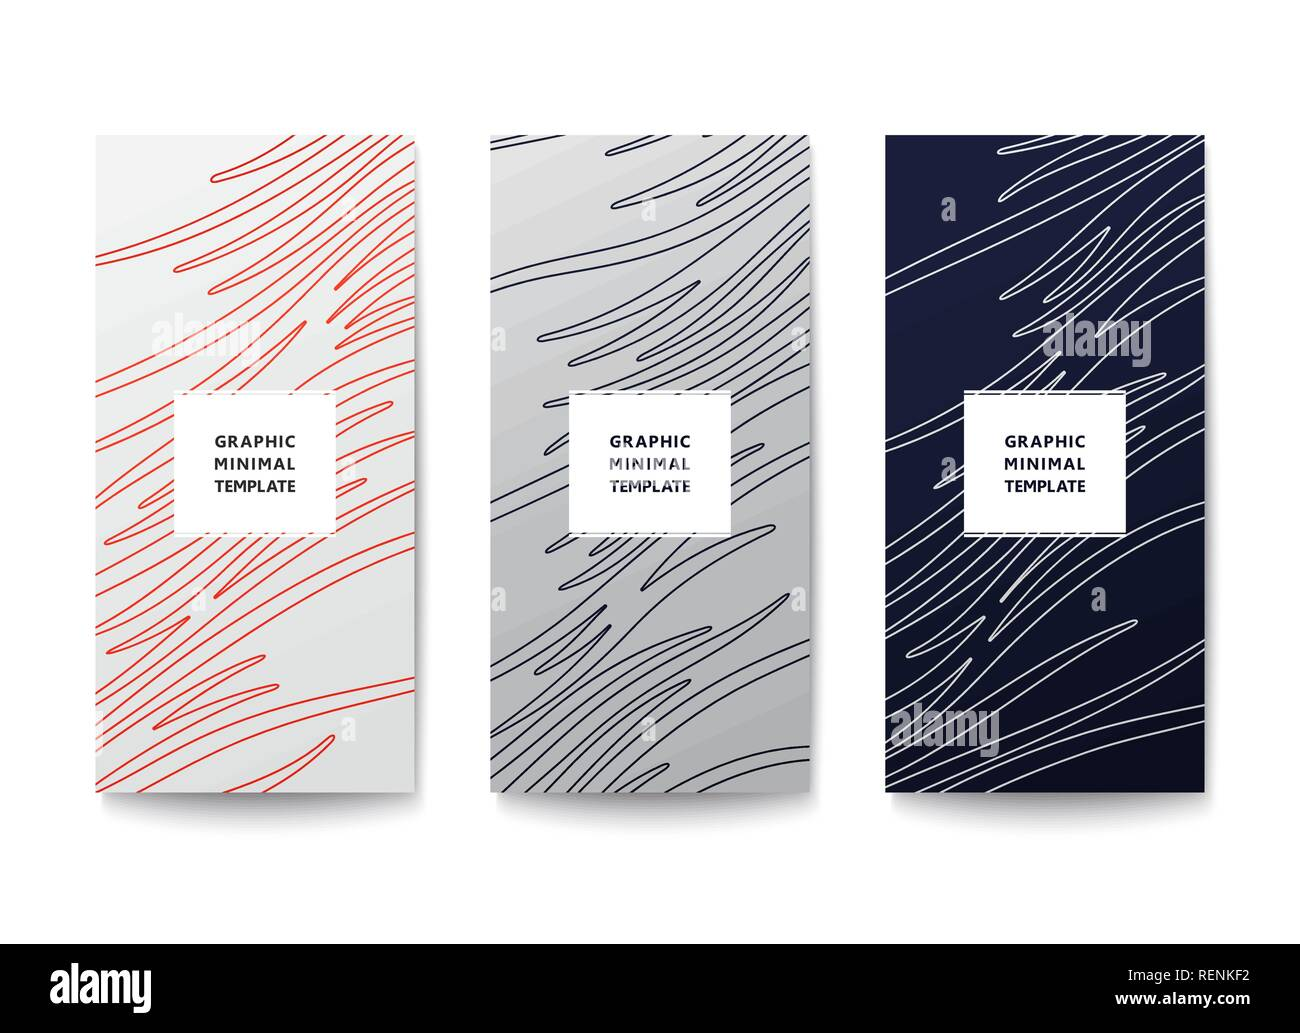 Simple graphic banner with wavy lines pattern. Minimal lineart design. Vector template - Stock Image